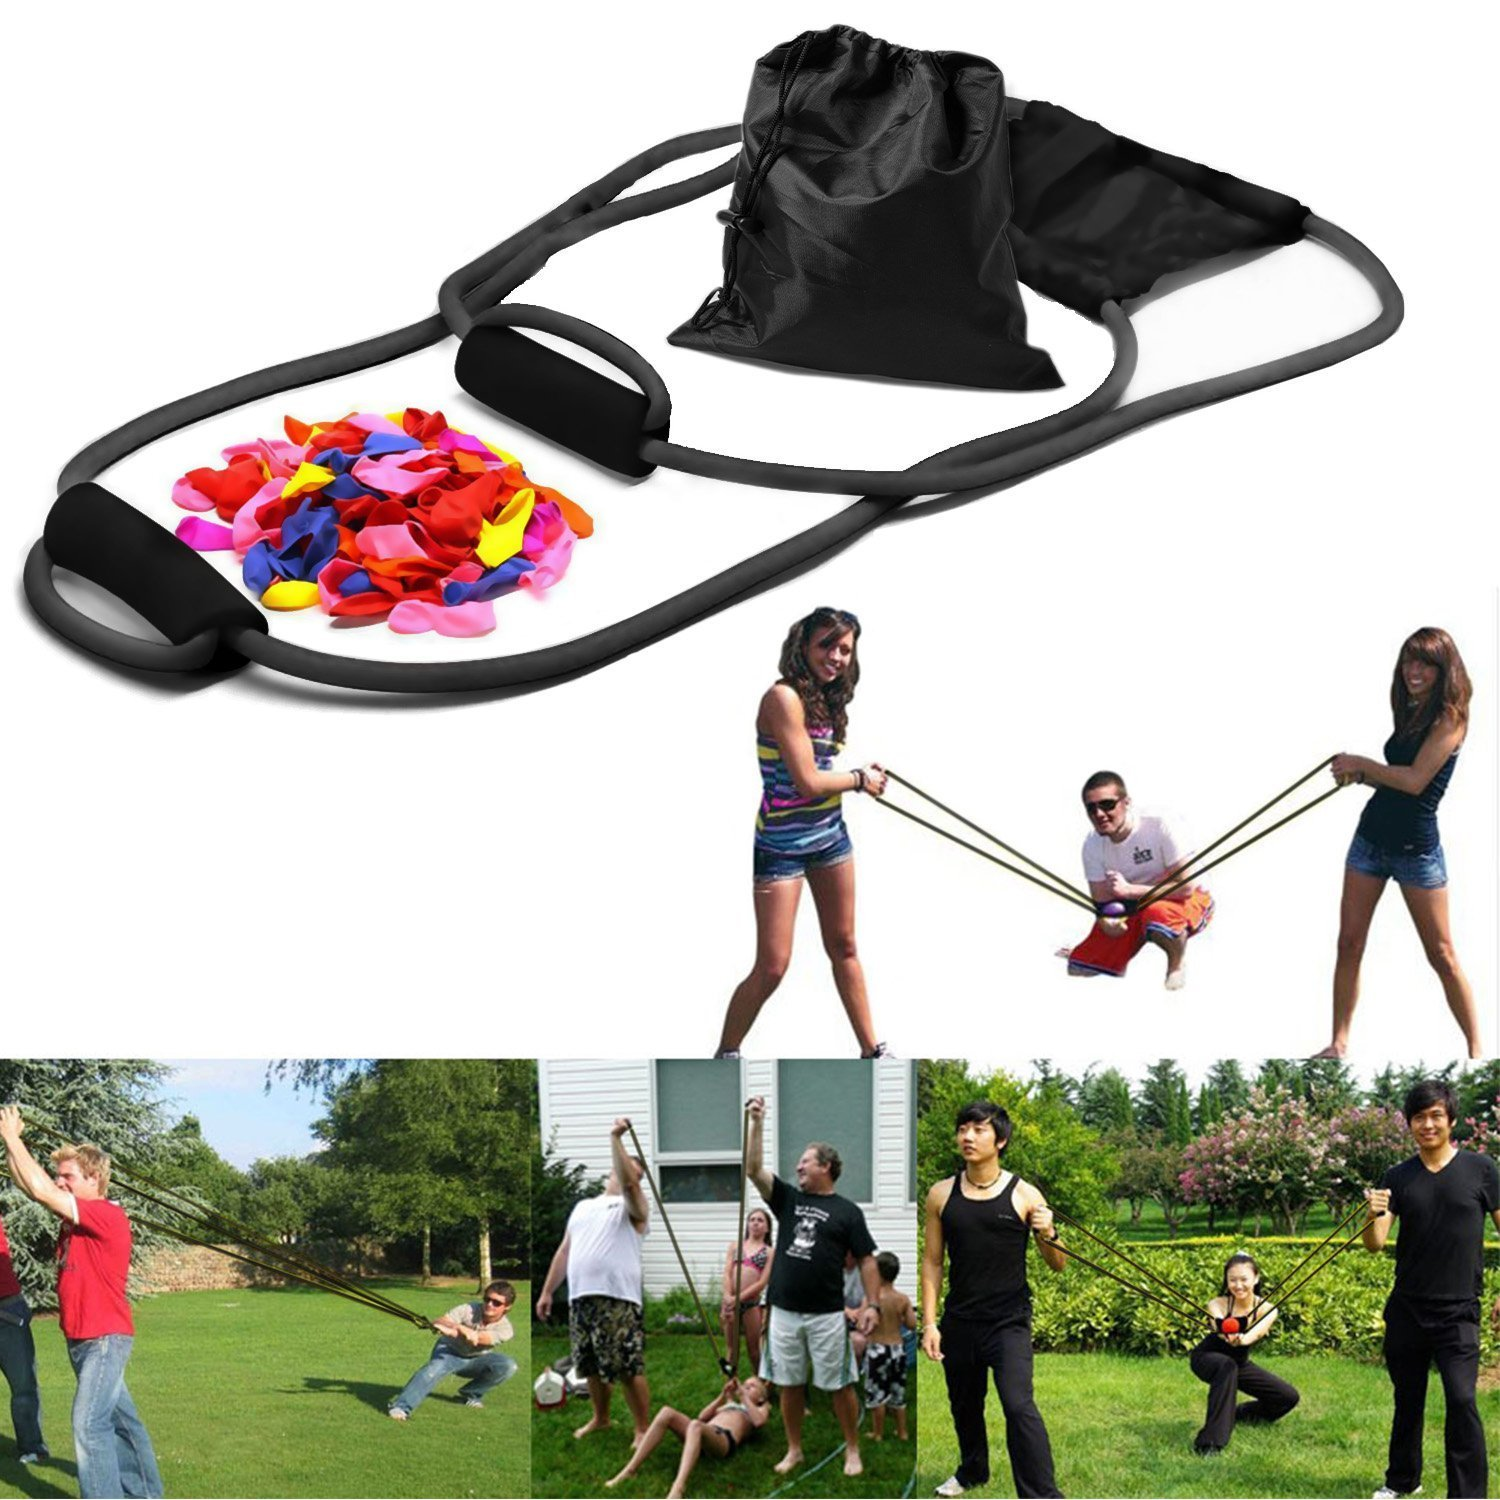 YHMALL 3 Person Water Balloon Launcher with 100 Water Balloons, Catapult/Cannon Slingshot Free Balloons. Outdoor Game for Kids and Adults.